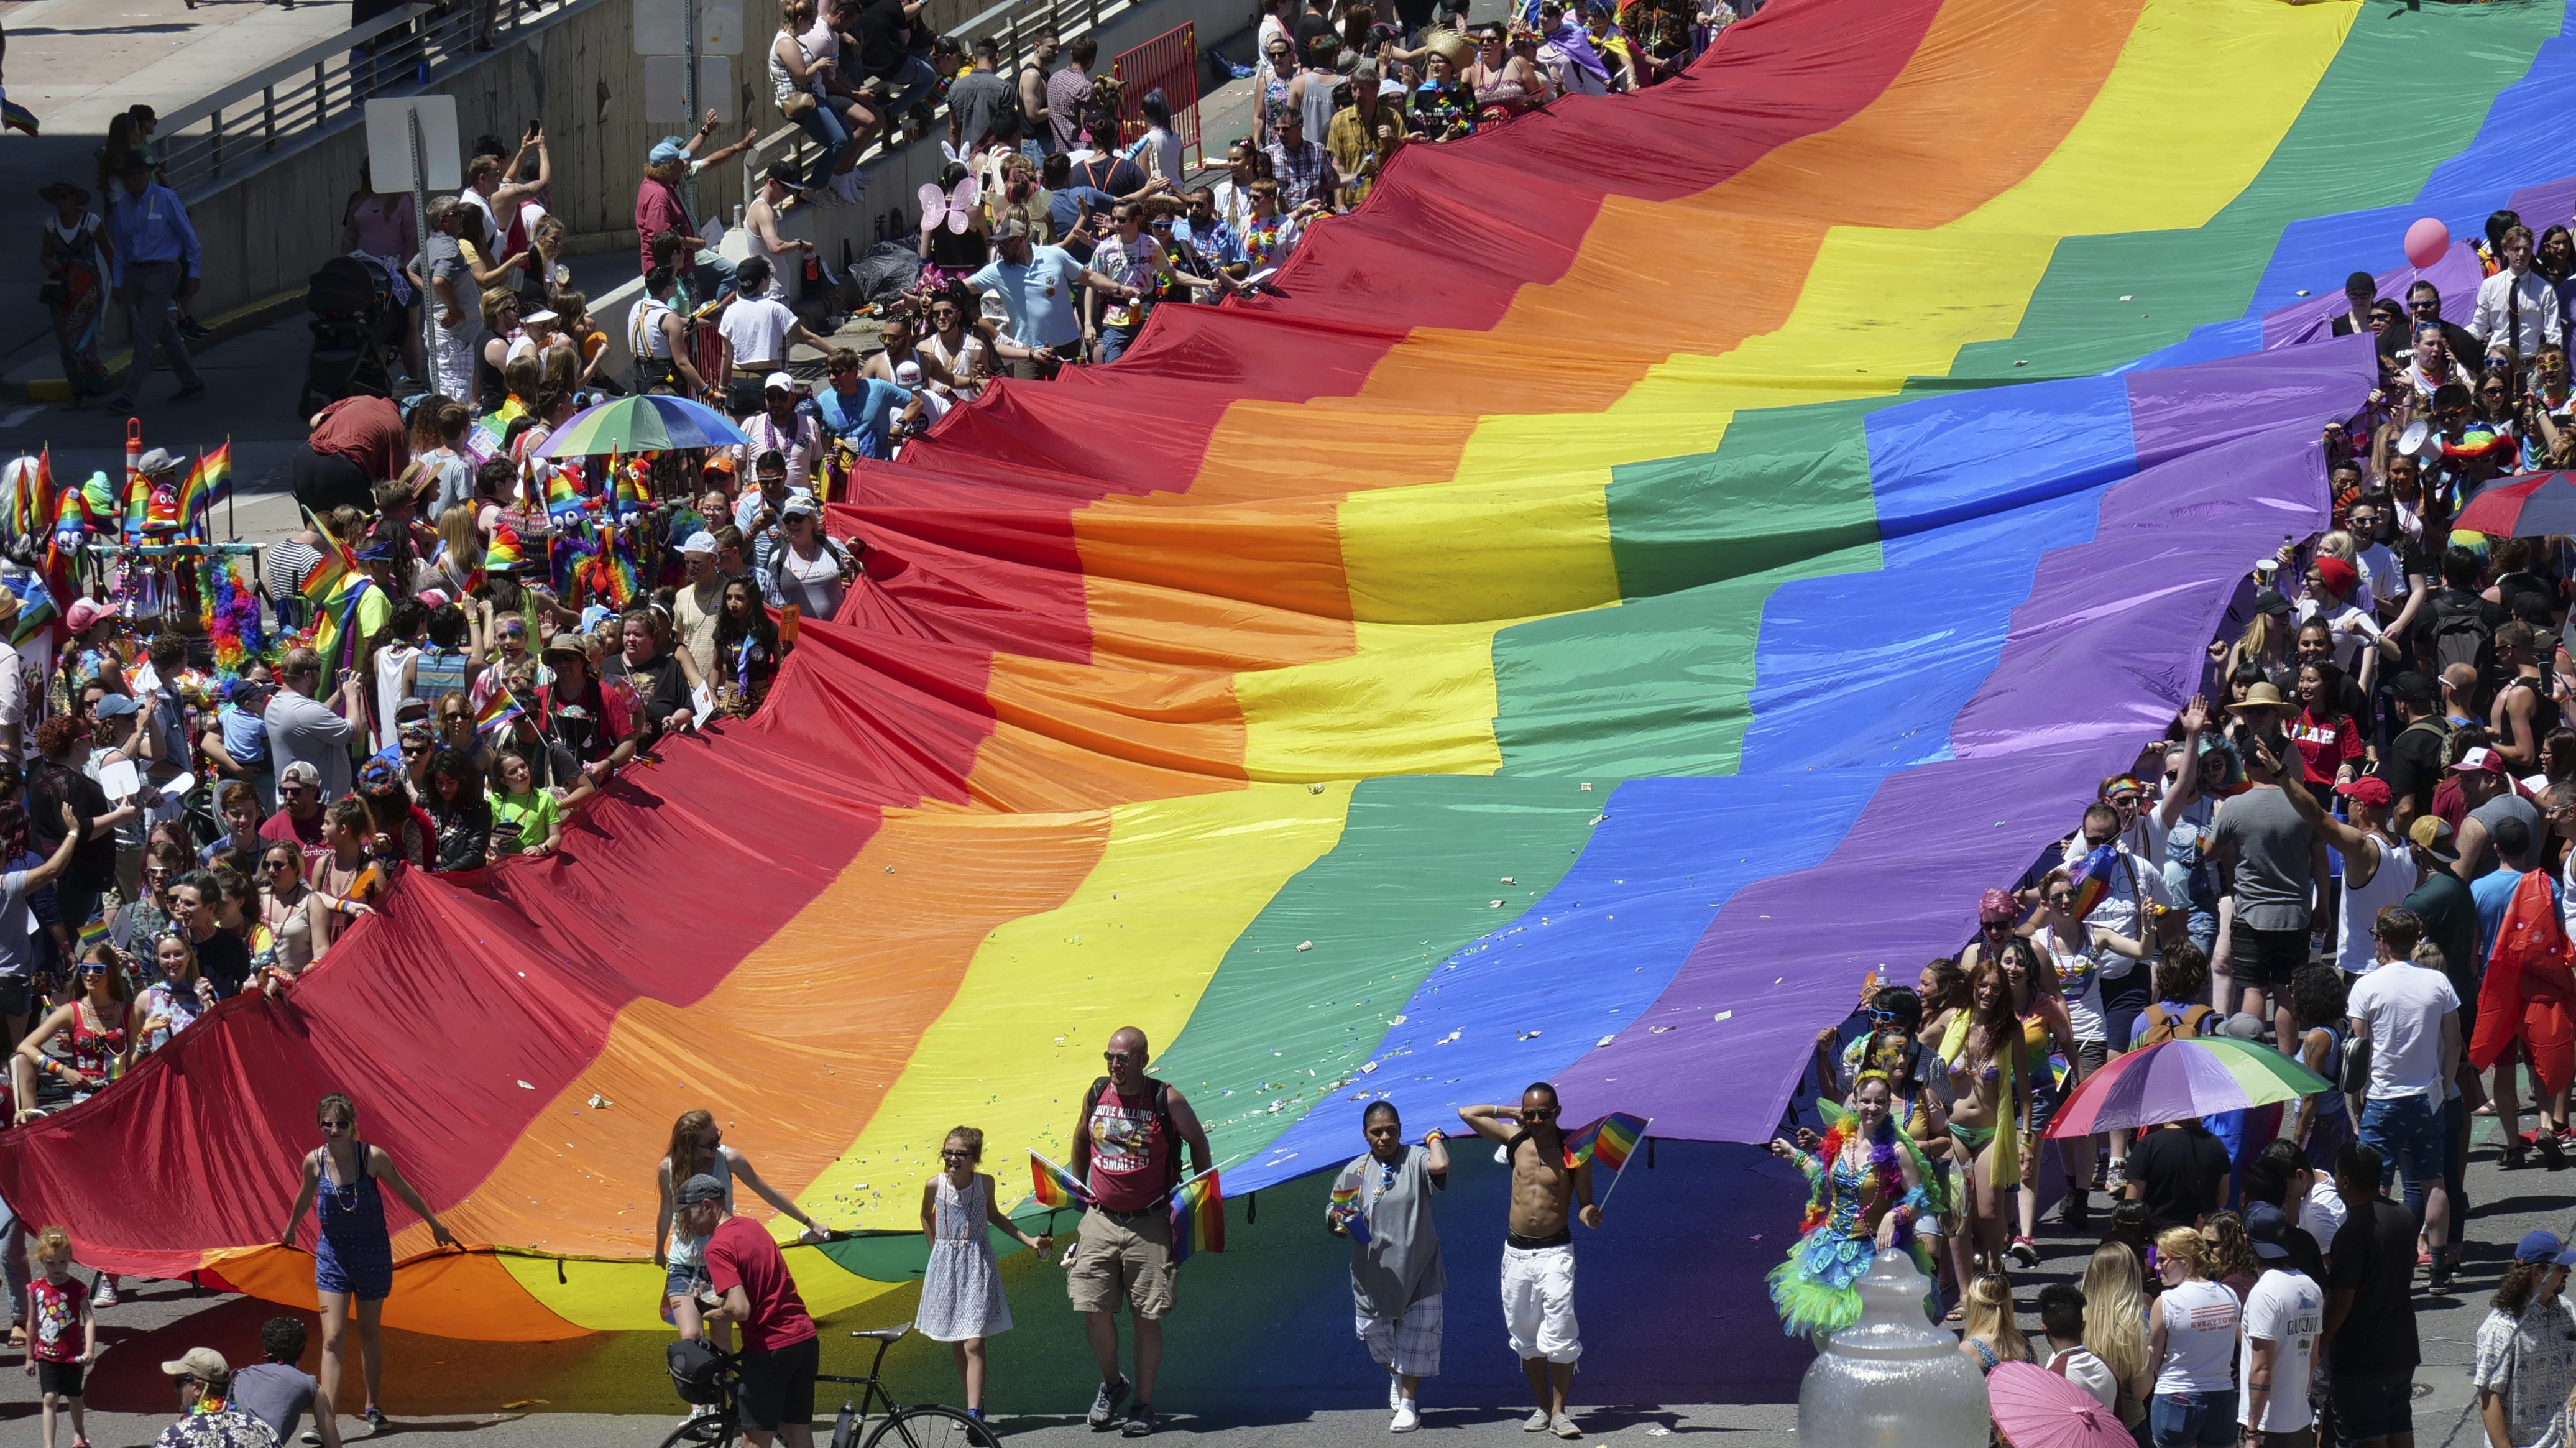 Marchers carry an LGBTQ pride flag during the Utah Pride Parade in Salt Lake City in June. The Senate bill would require the Census Bureau to protect all sexual orientation and gender identity information it collects.